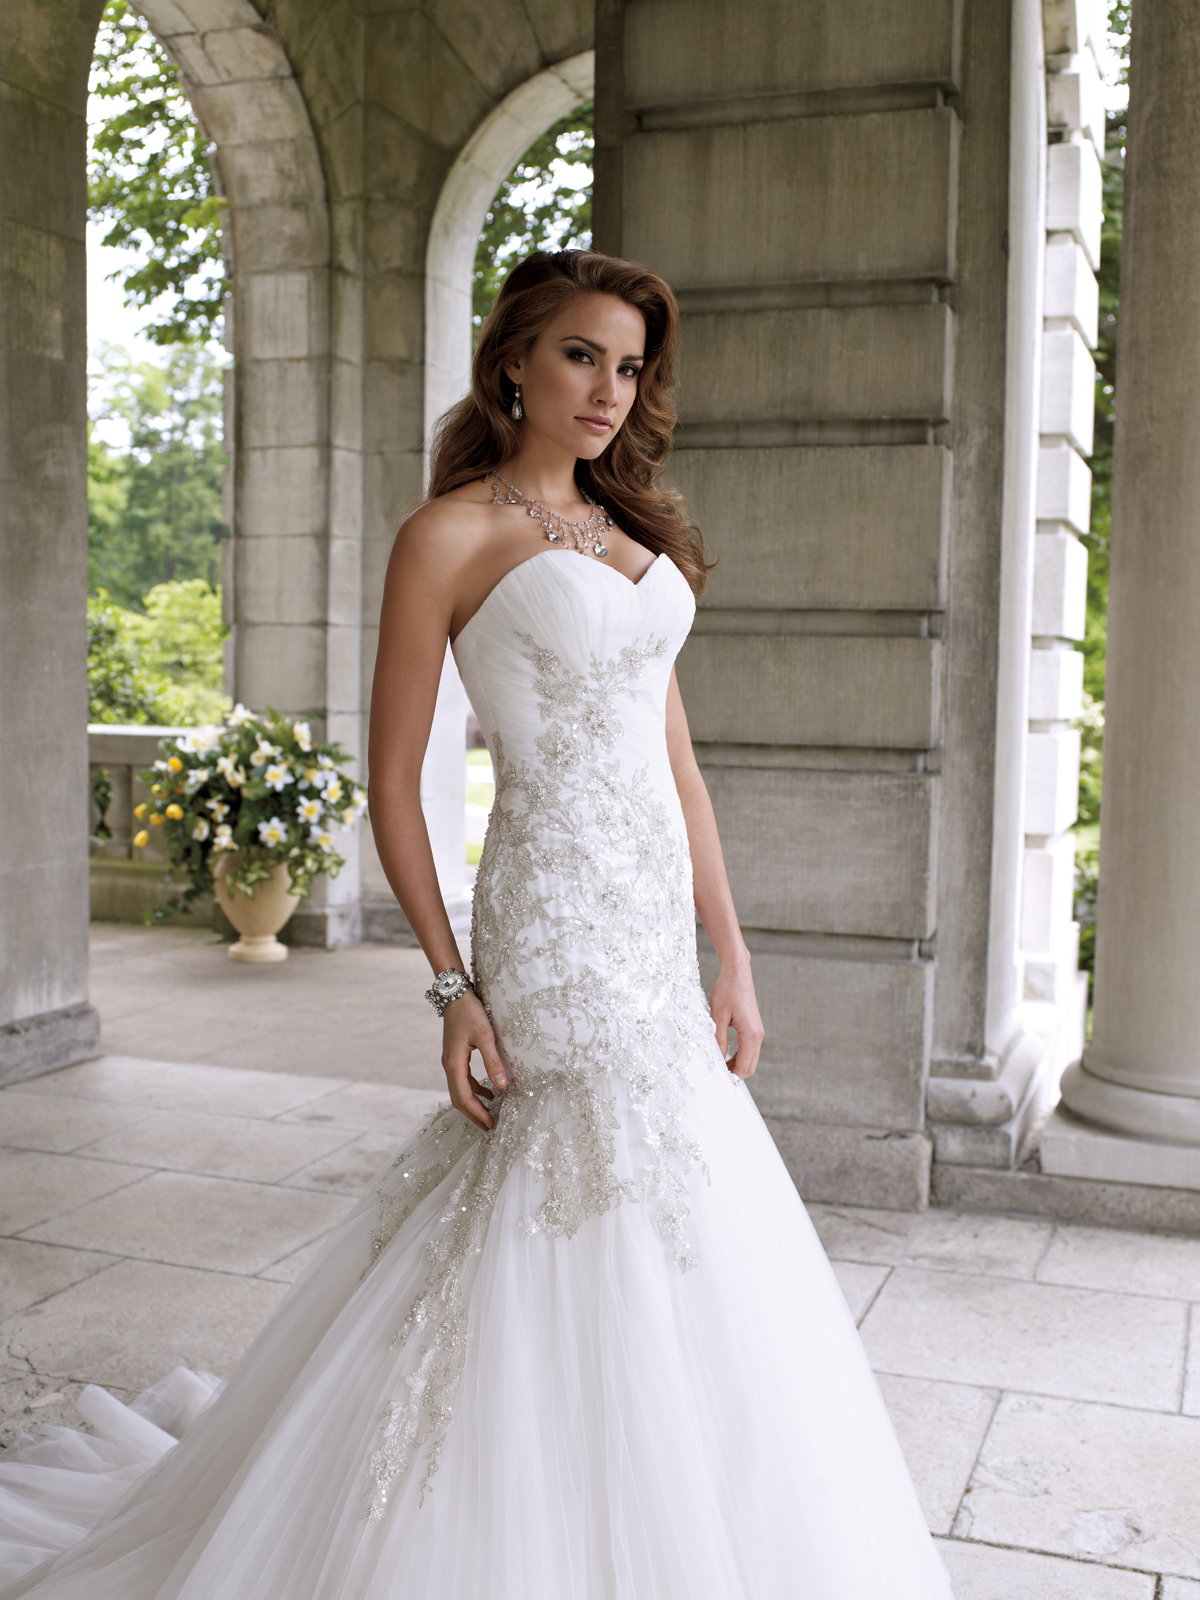 Dream wedding place great designer wedding dresses by for Design my perfect wedding dress